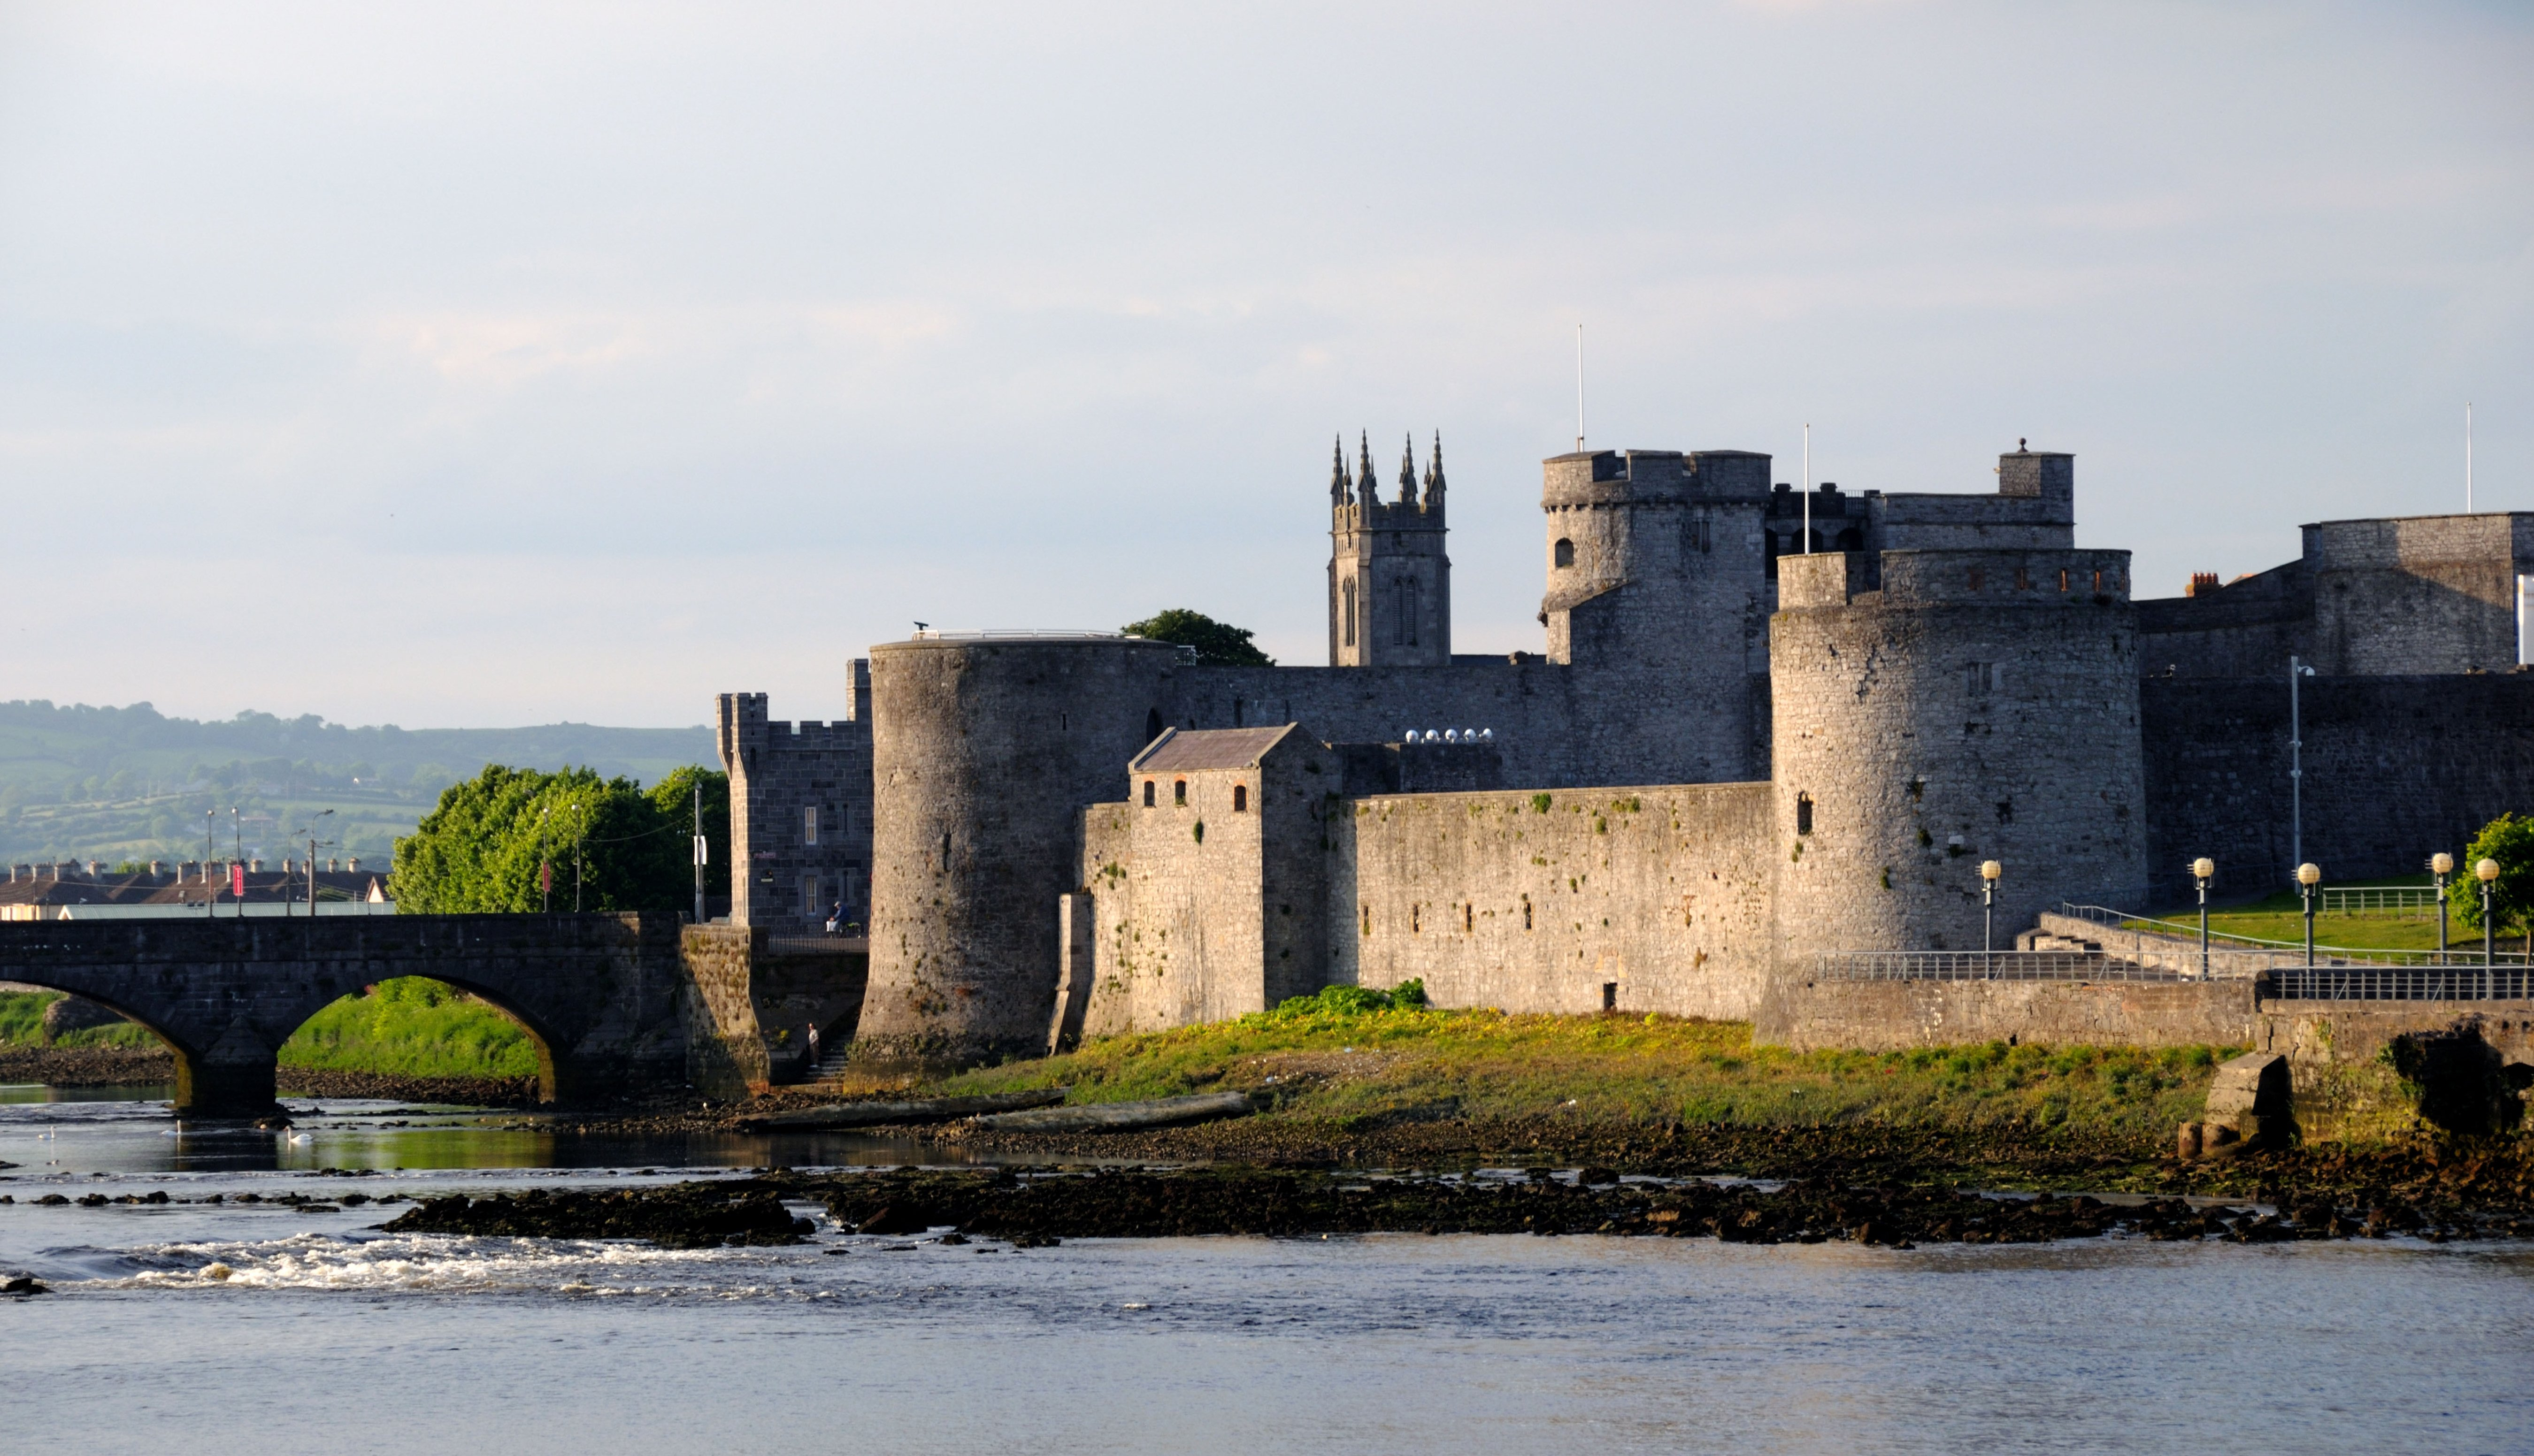 King John's Castle, Ireland